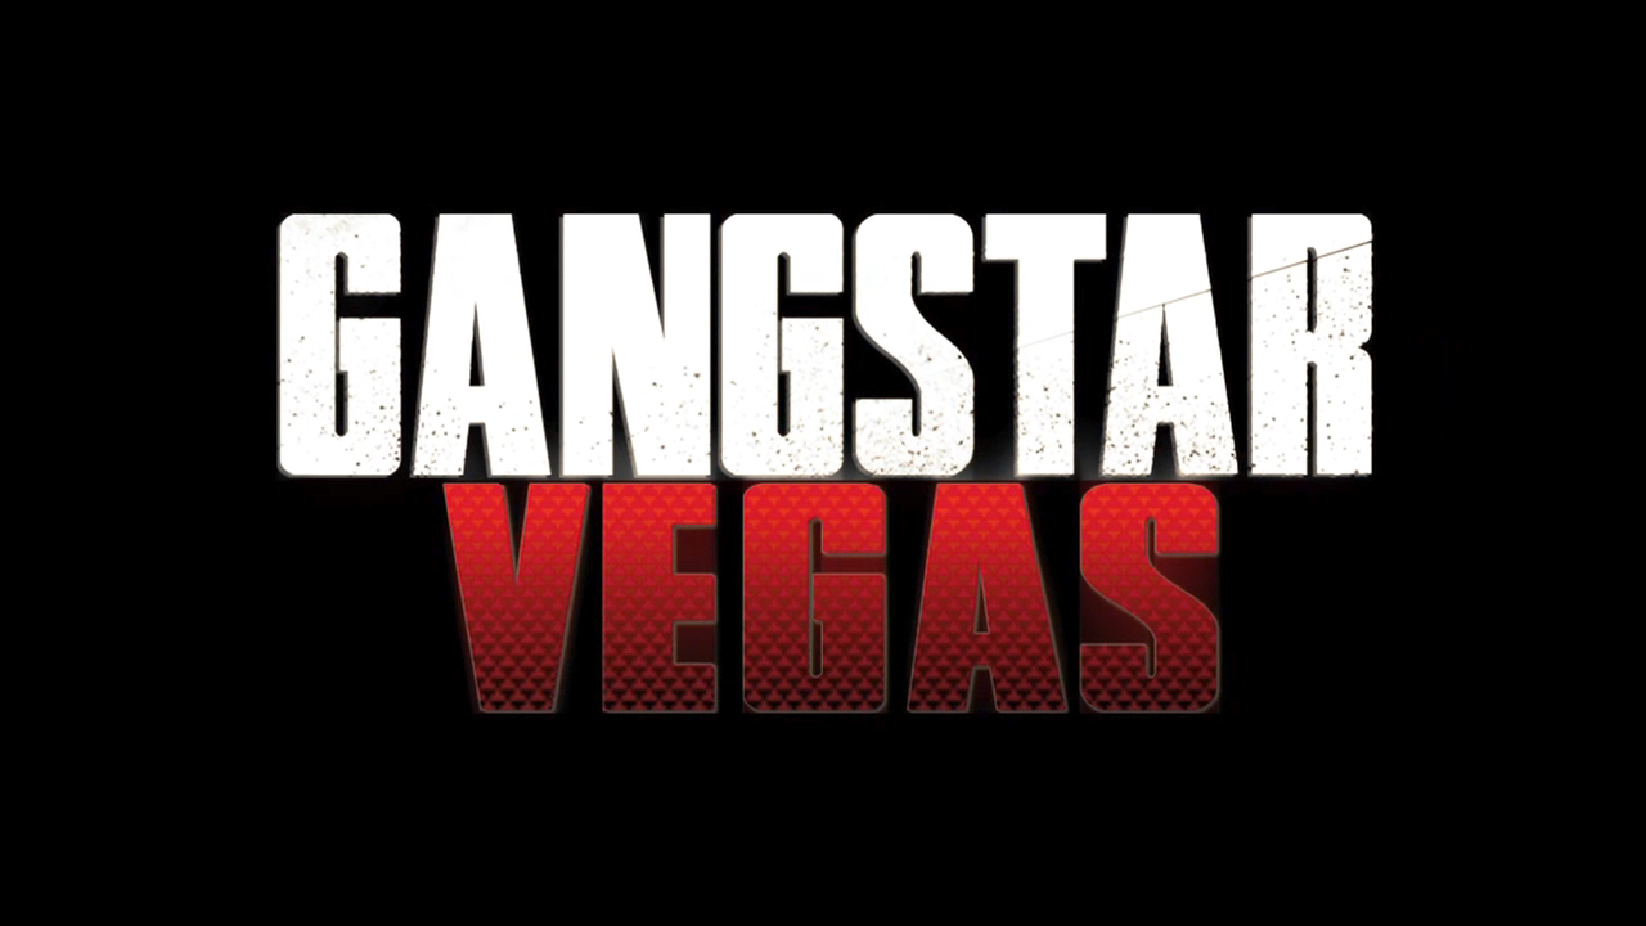 Gangstarvegastool.com